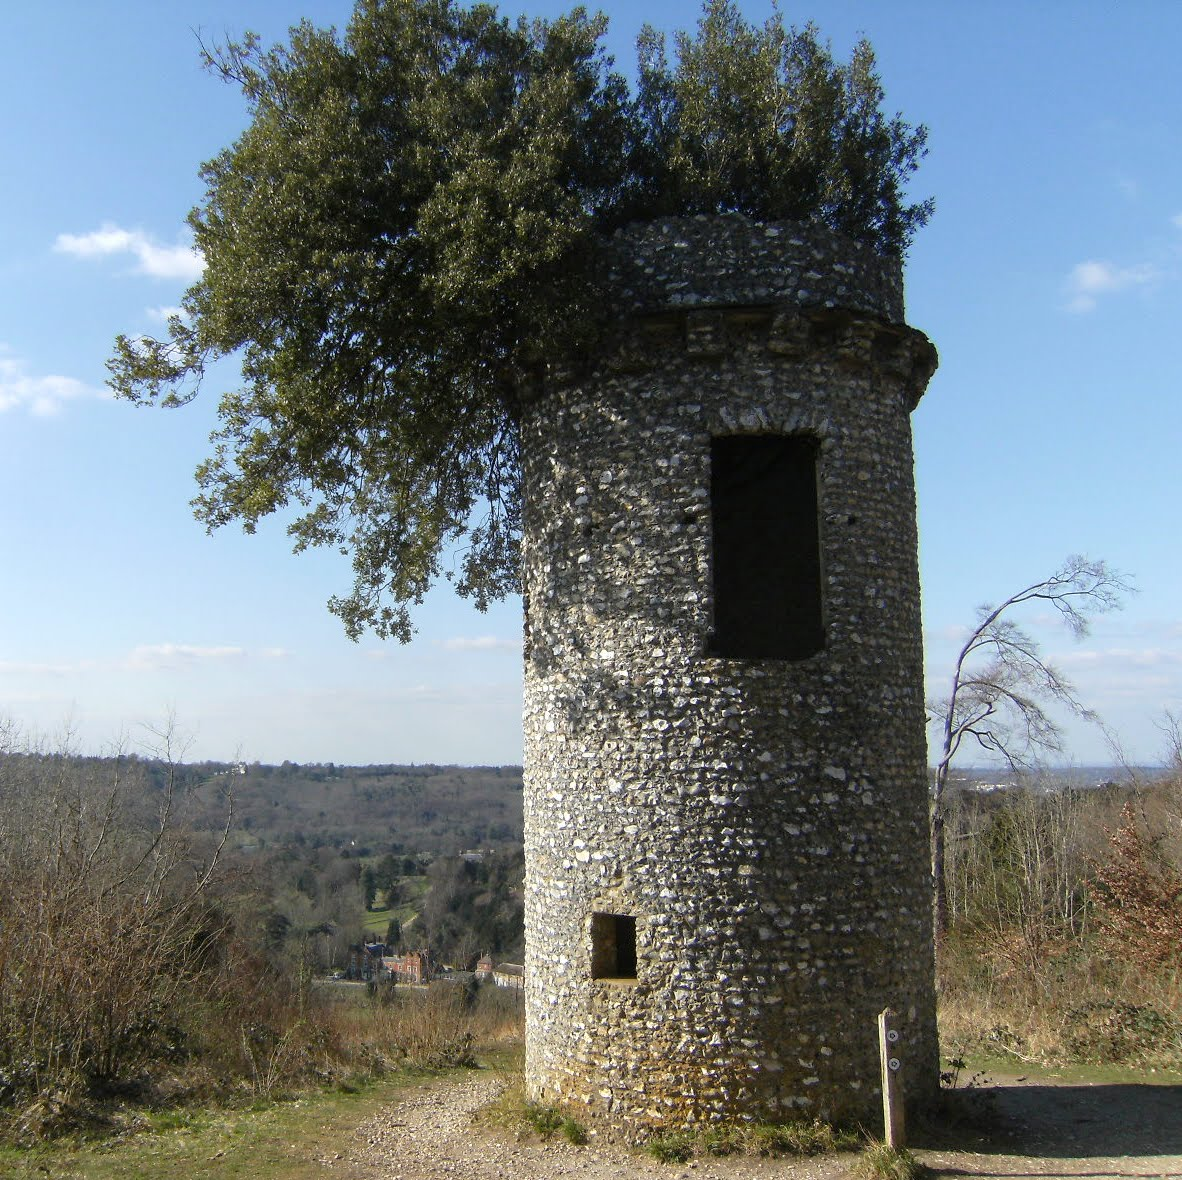 DSCF0632 Broadwood's Folly, Box Hill Country Park